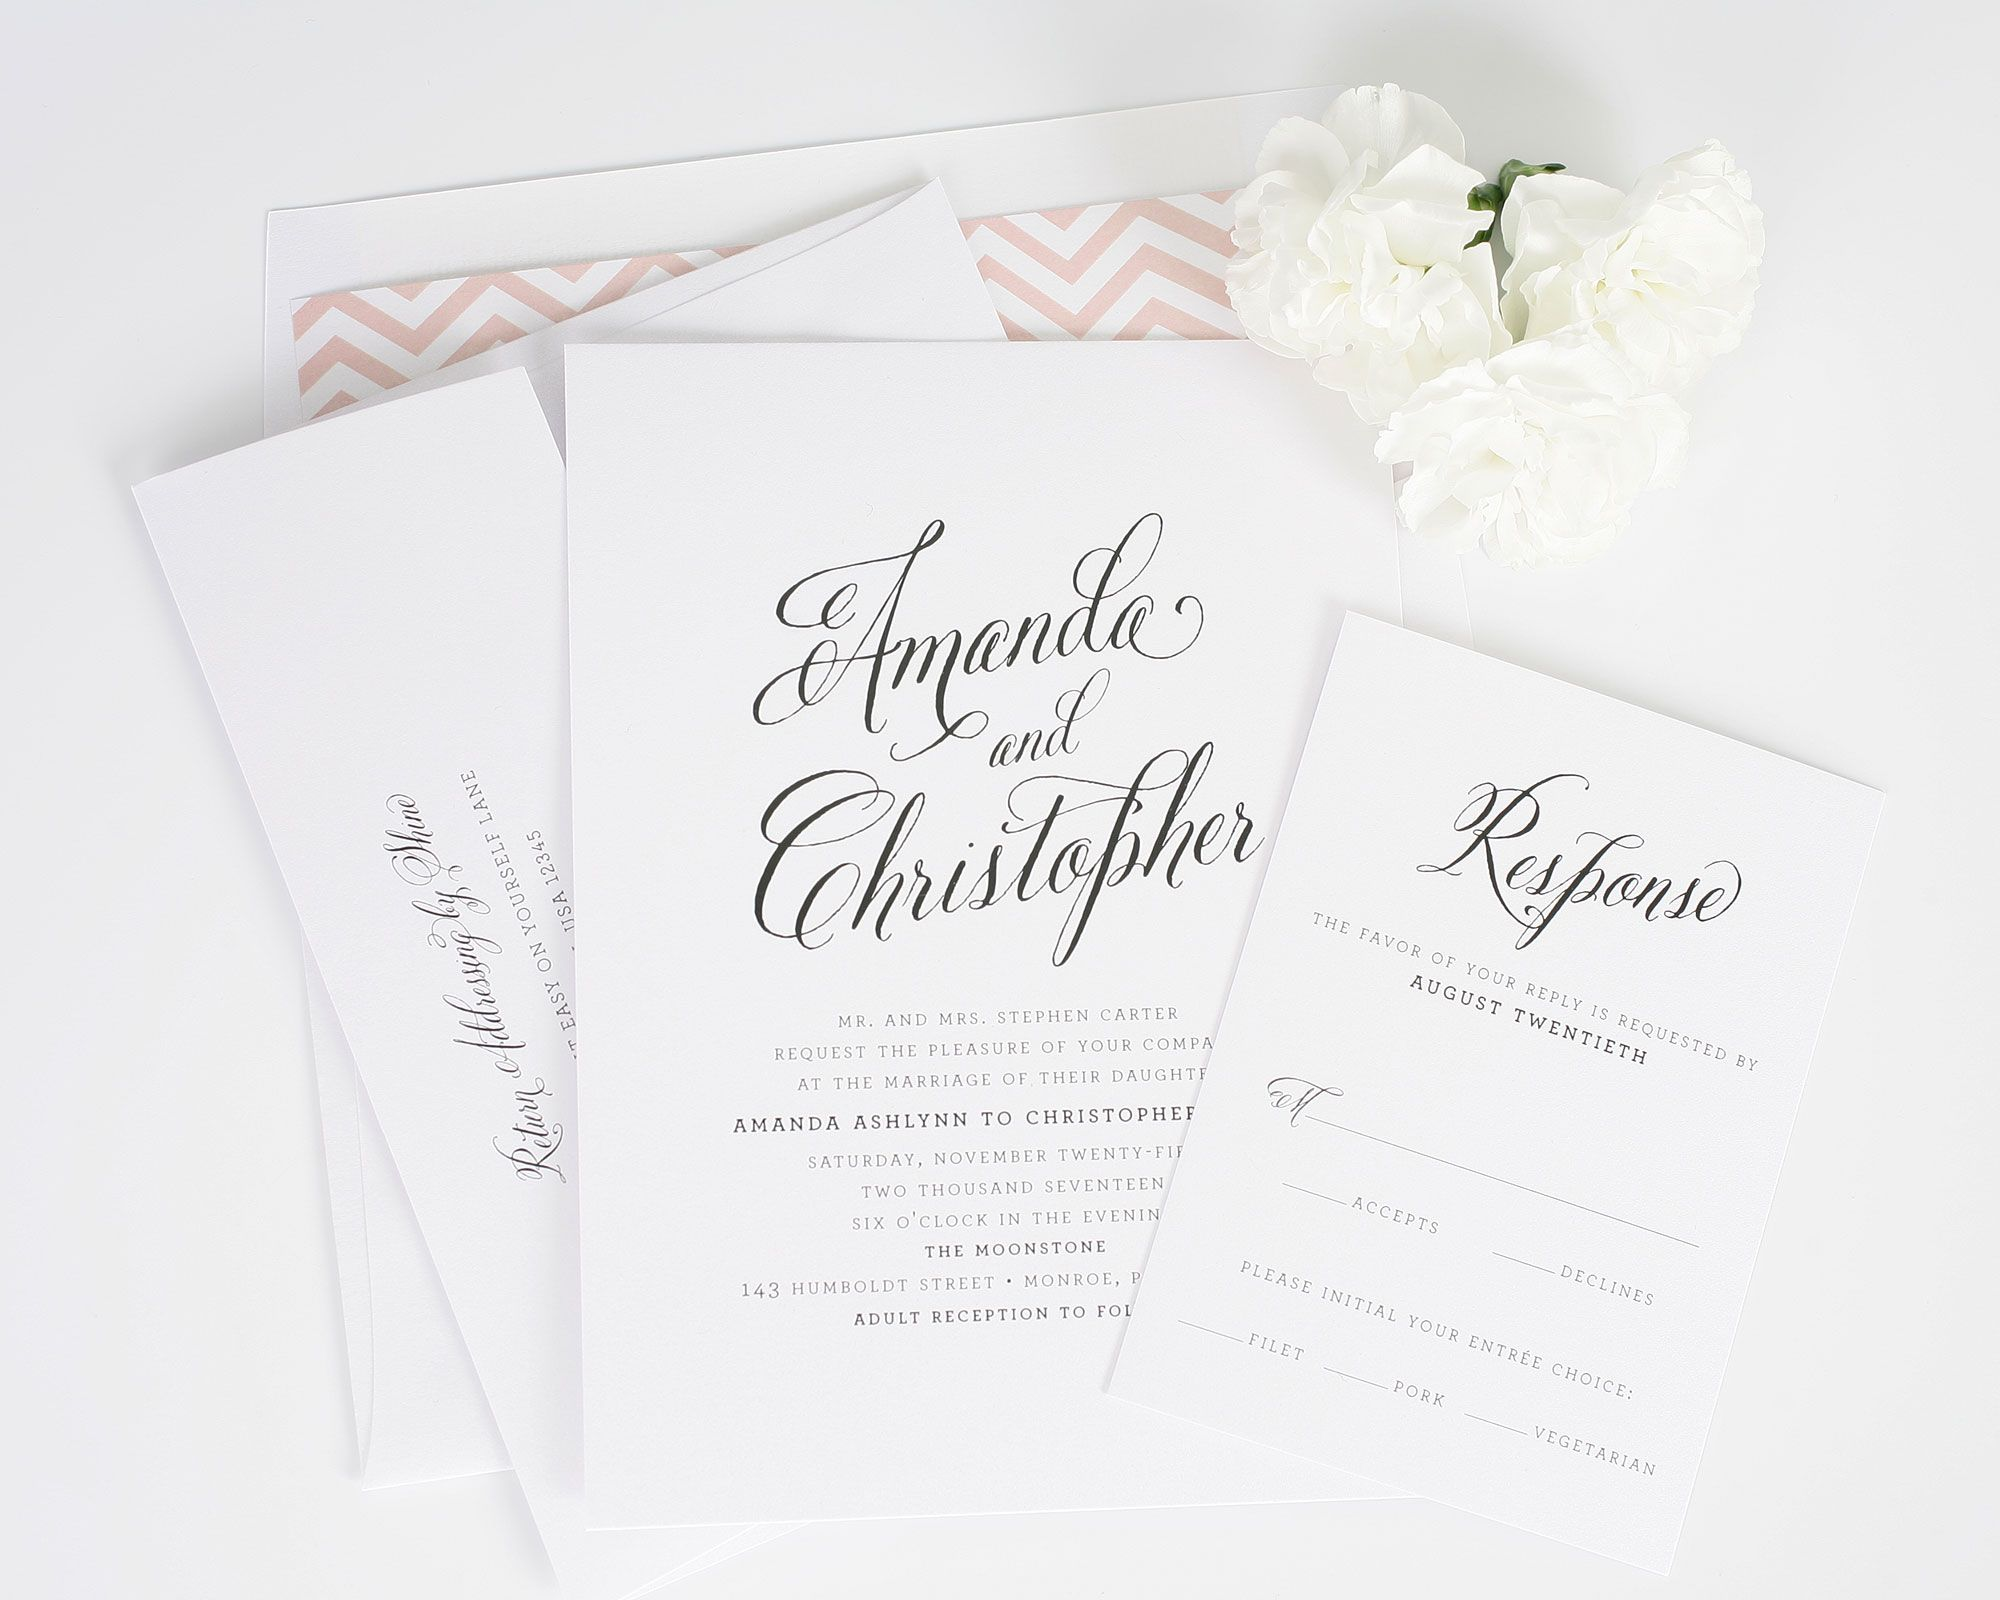 Rustic Modern Wedding Invitations | Chevron wedding invitations ...